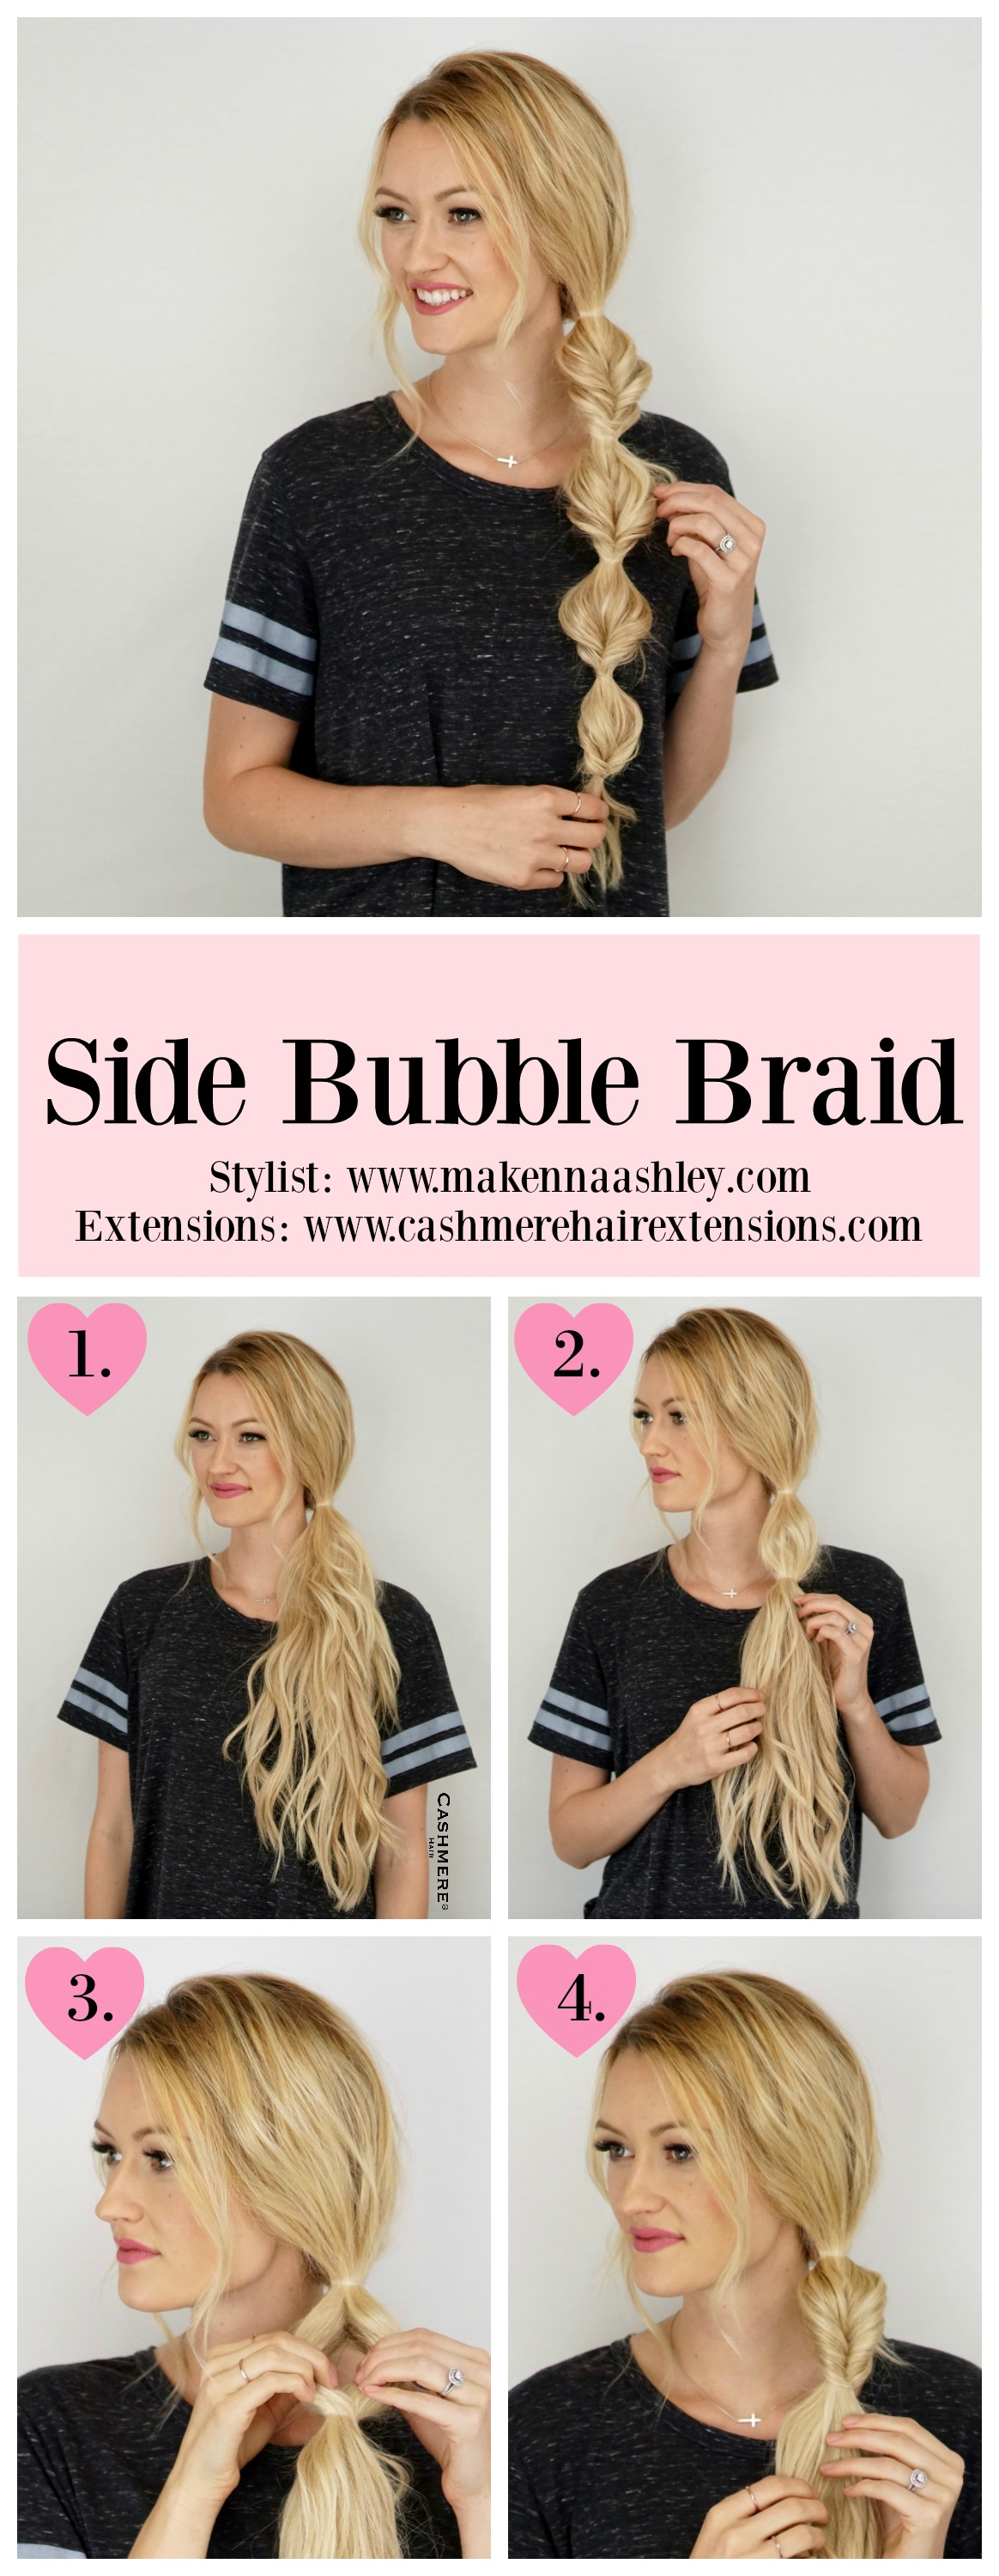 Side Bubble Braid Tutorial Using Cashmere Hair-viva glam magazine-beauty-hair cashmere hair2